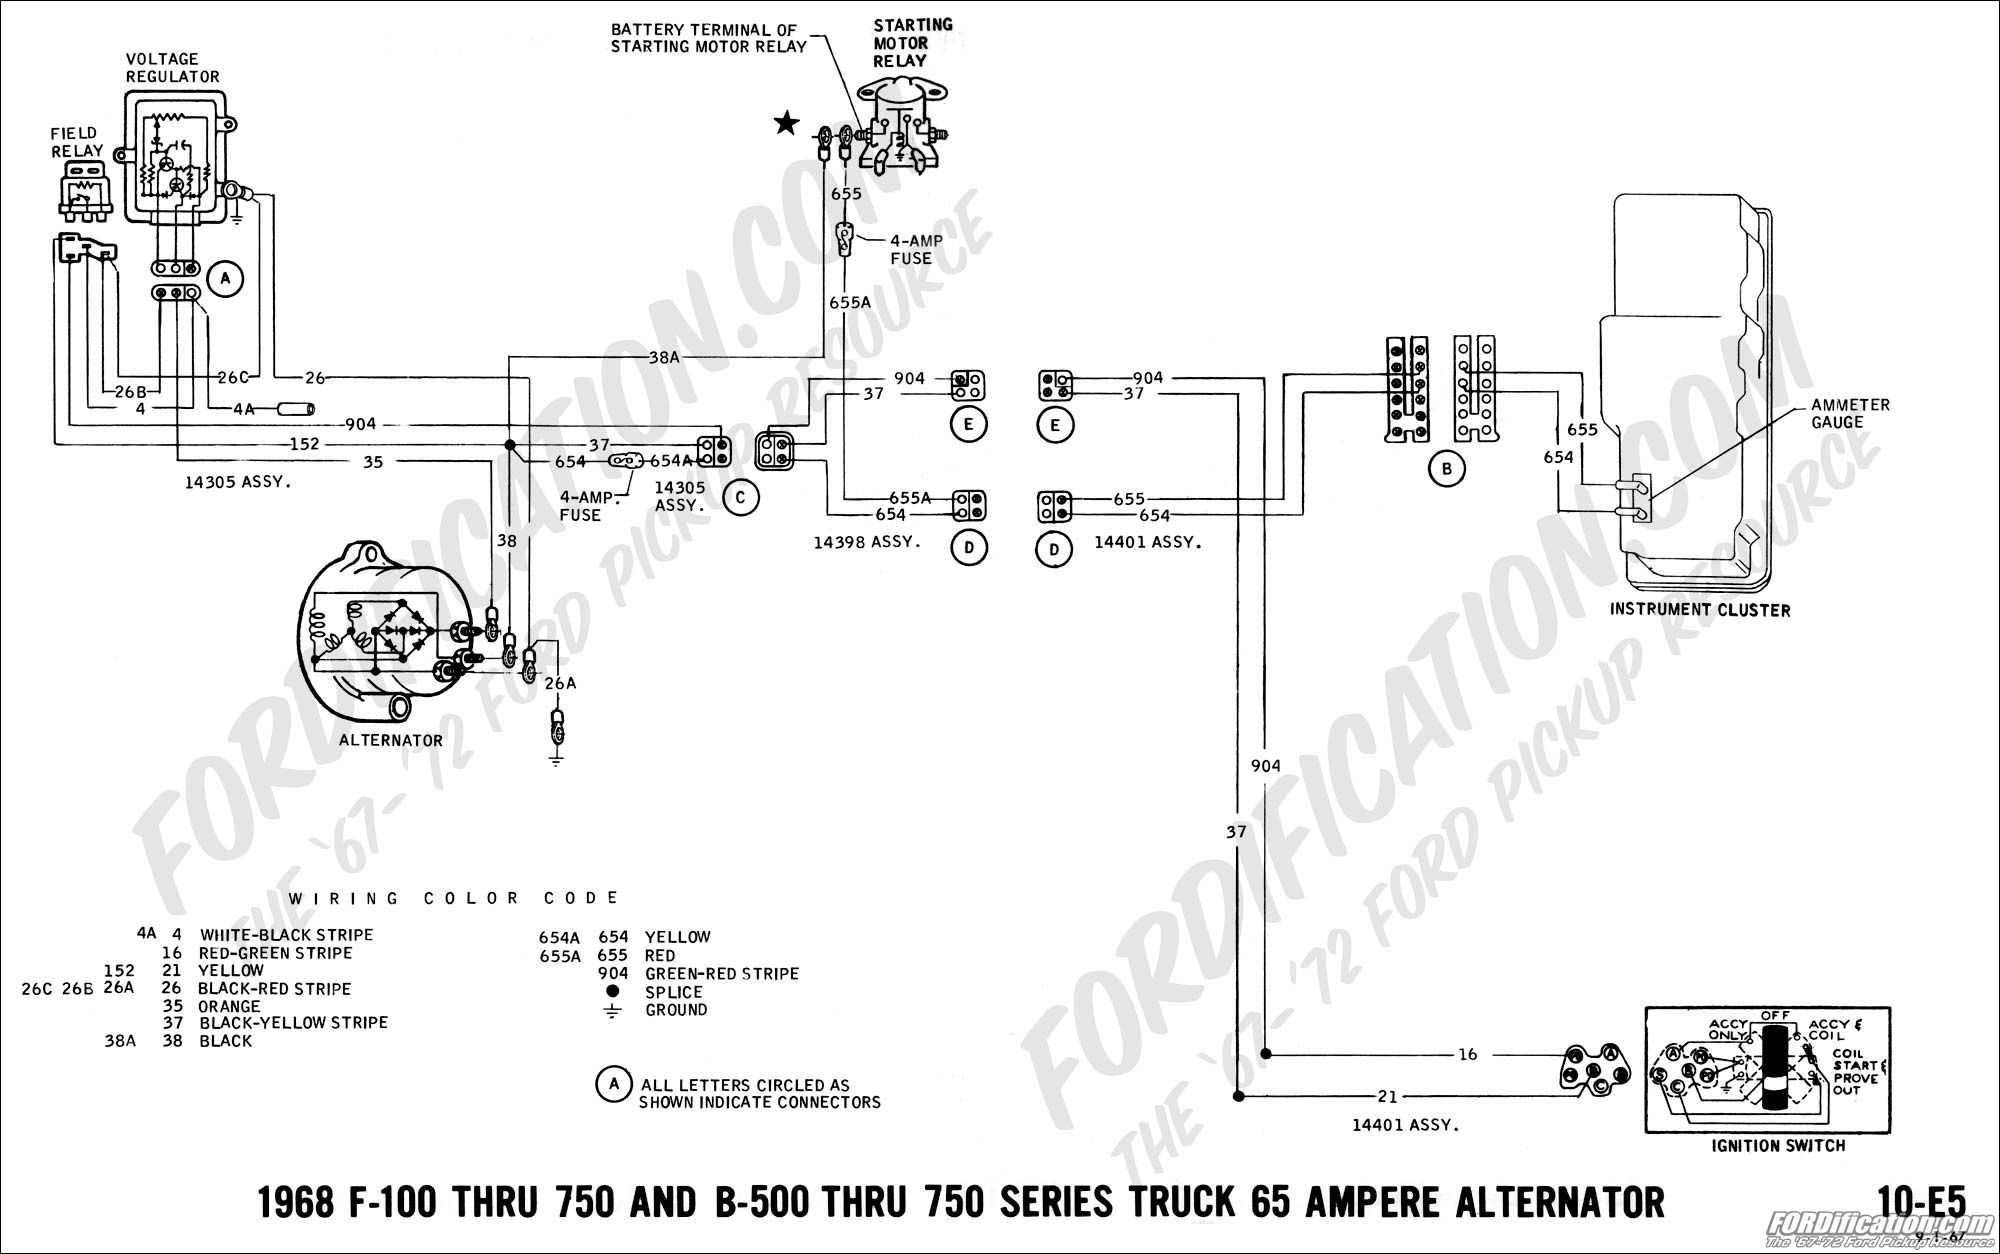 1969 Ford F100 Voltage Gauge Wiring Diagram Wiring Diagram Schemes F100 Wiring  Diagram 1966 F 100 Wiring Diagram